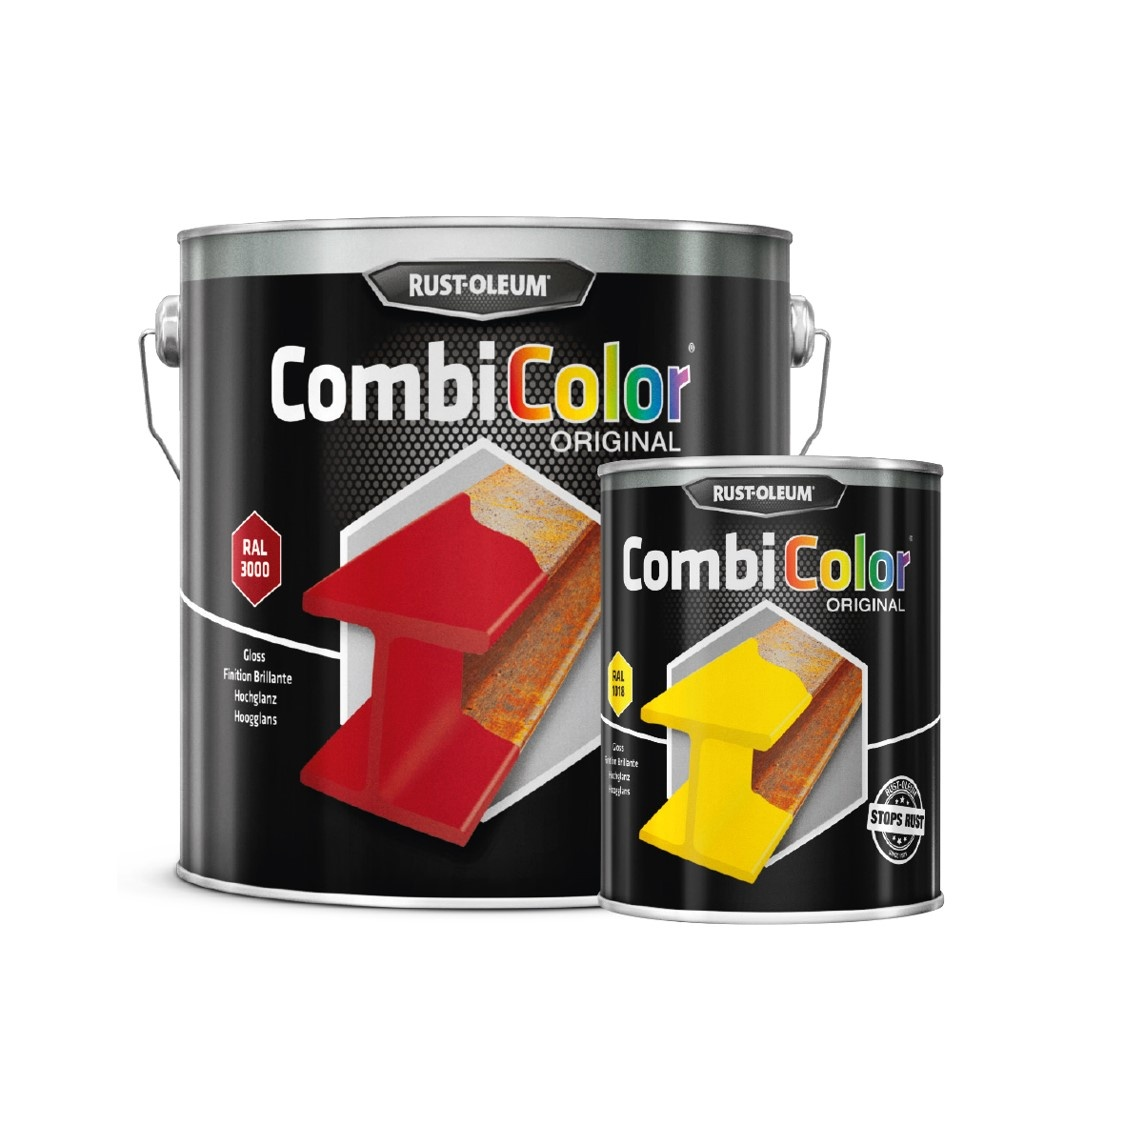 Rust-Oleum Combicolor Smooth Paint 750ml